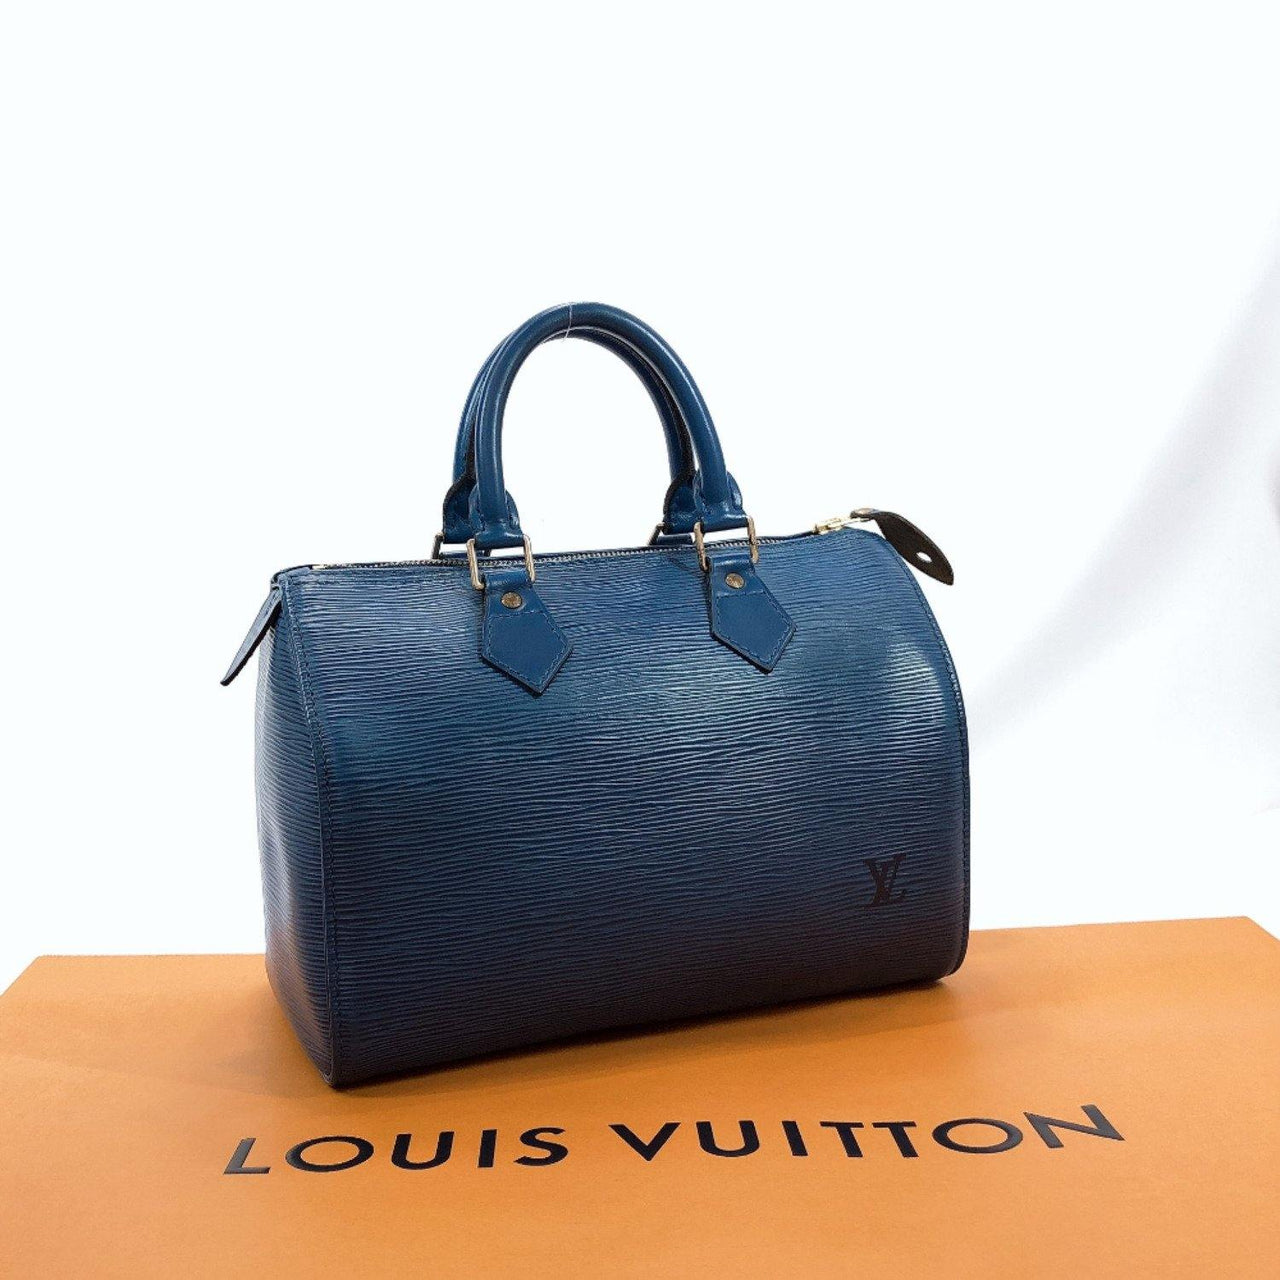 LOUIS VUITTON Handbag M43015 Speedy 25 vintage Epi Leather blue Women Used